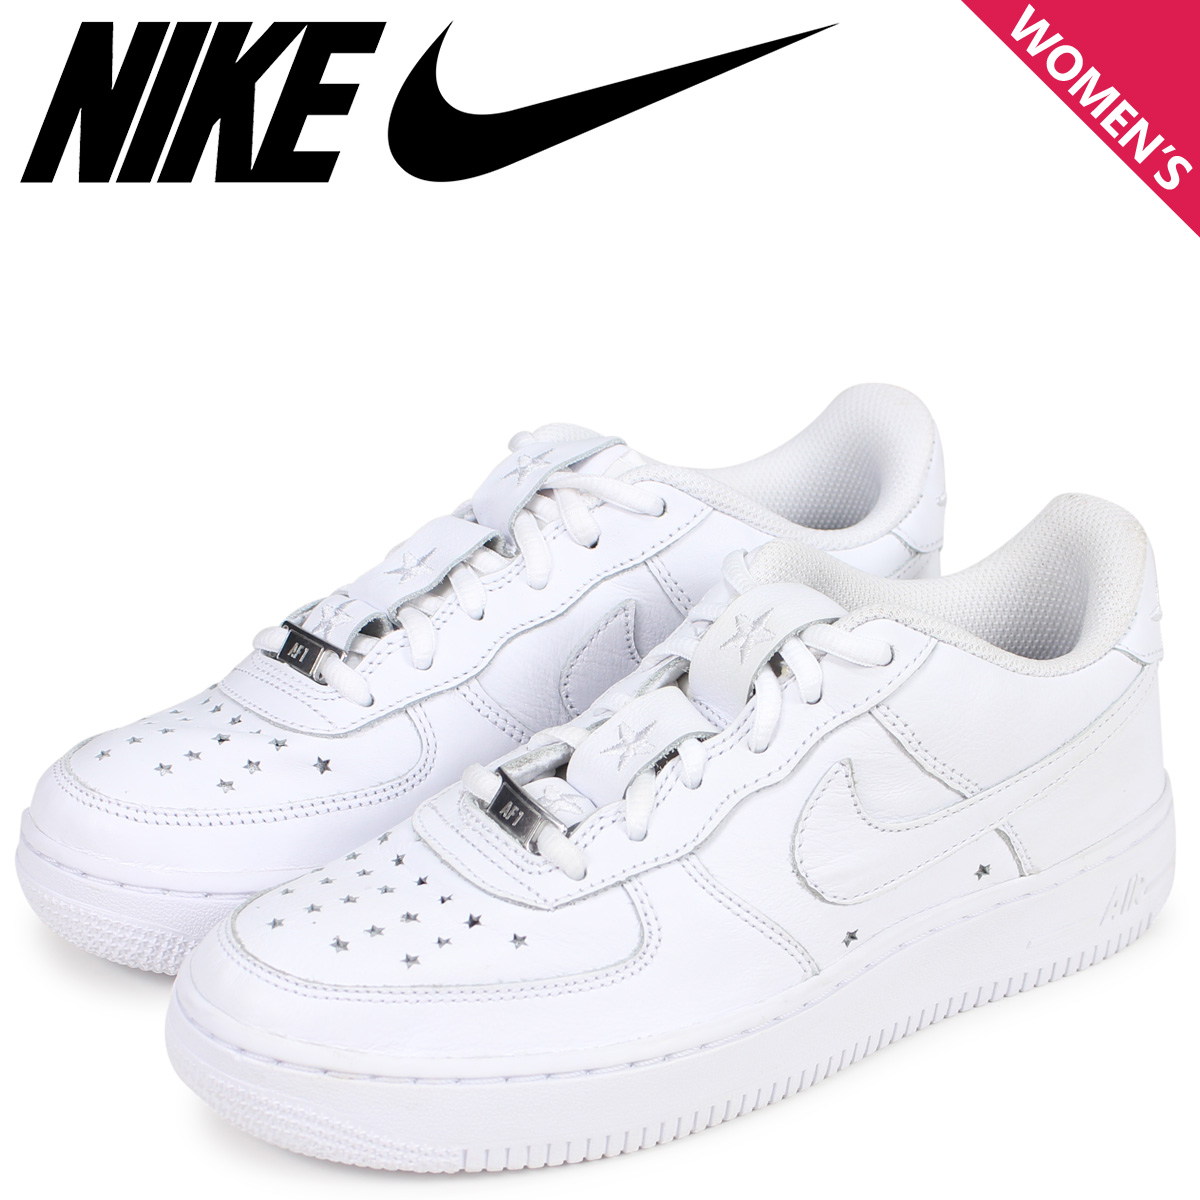 Air Force 1 Low Independence Day White